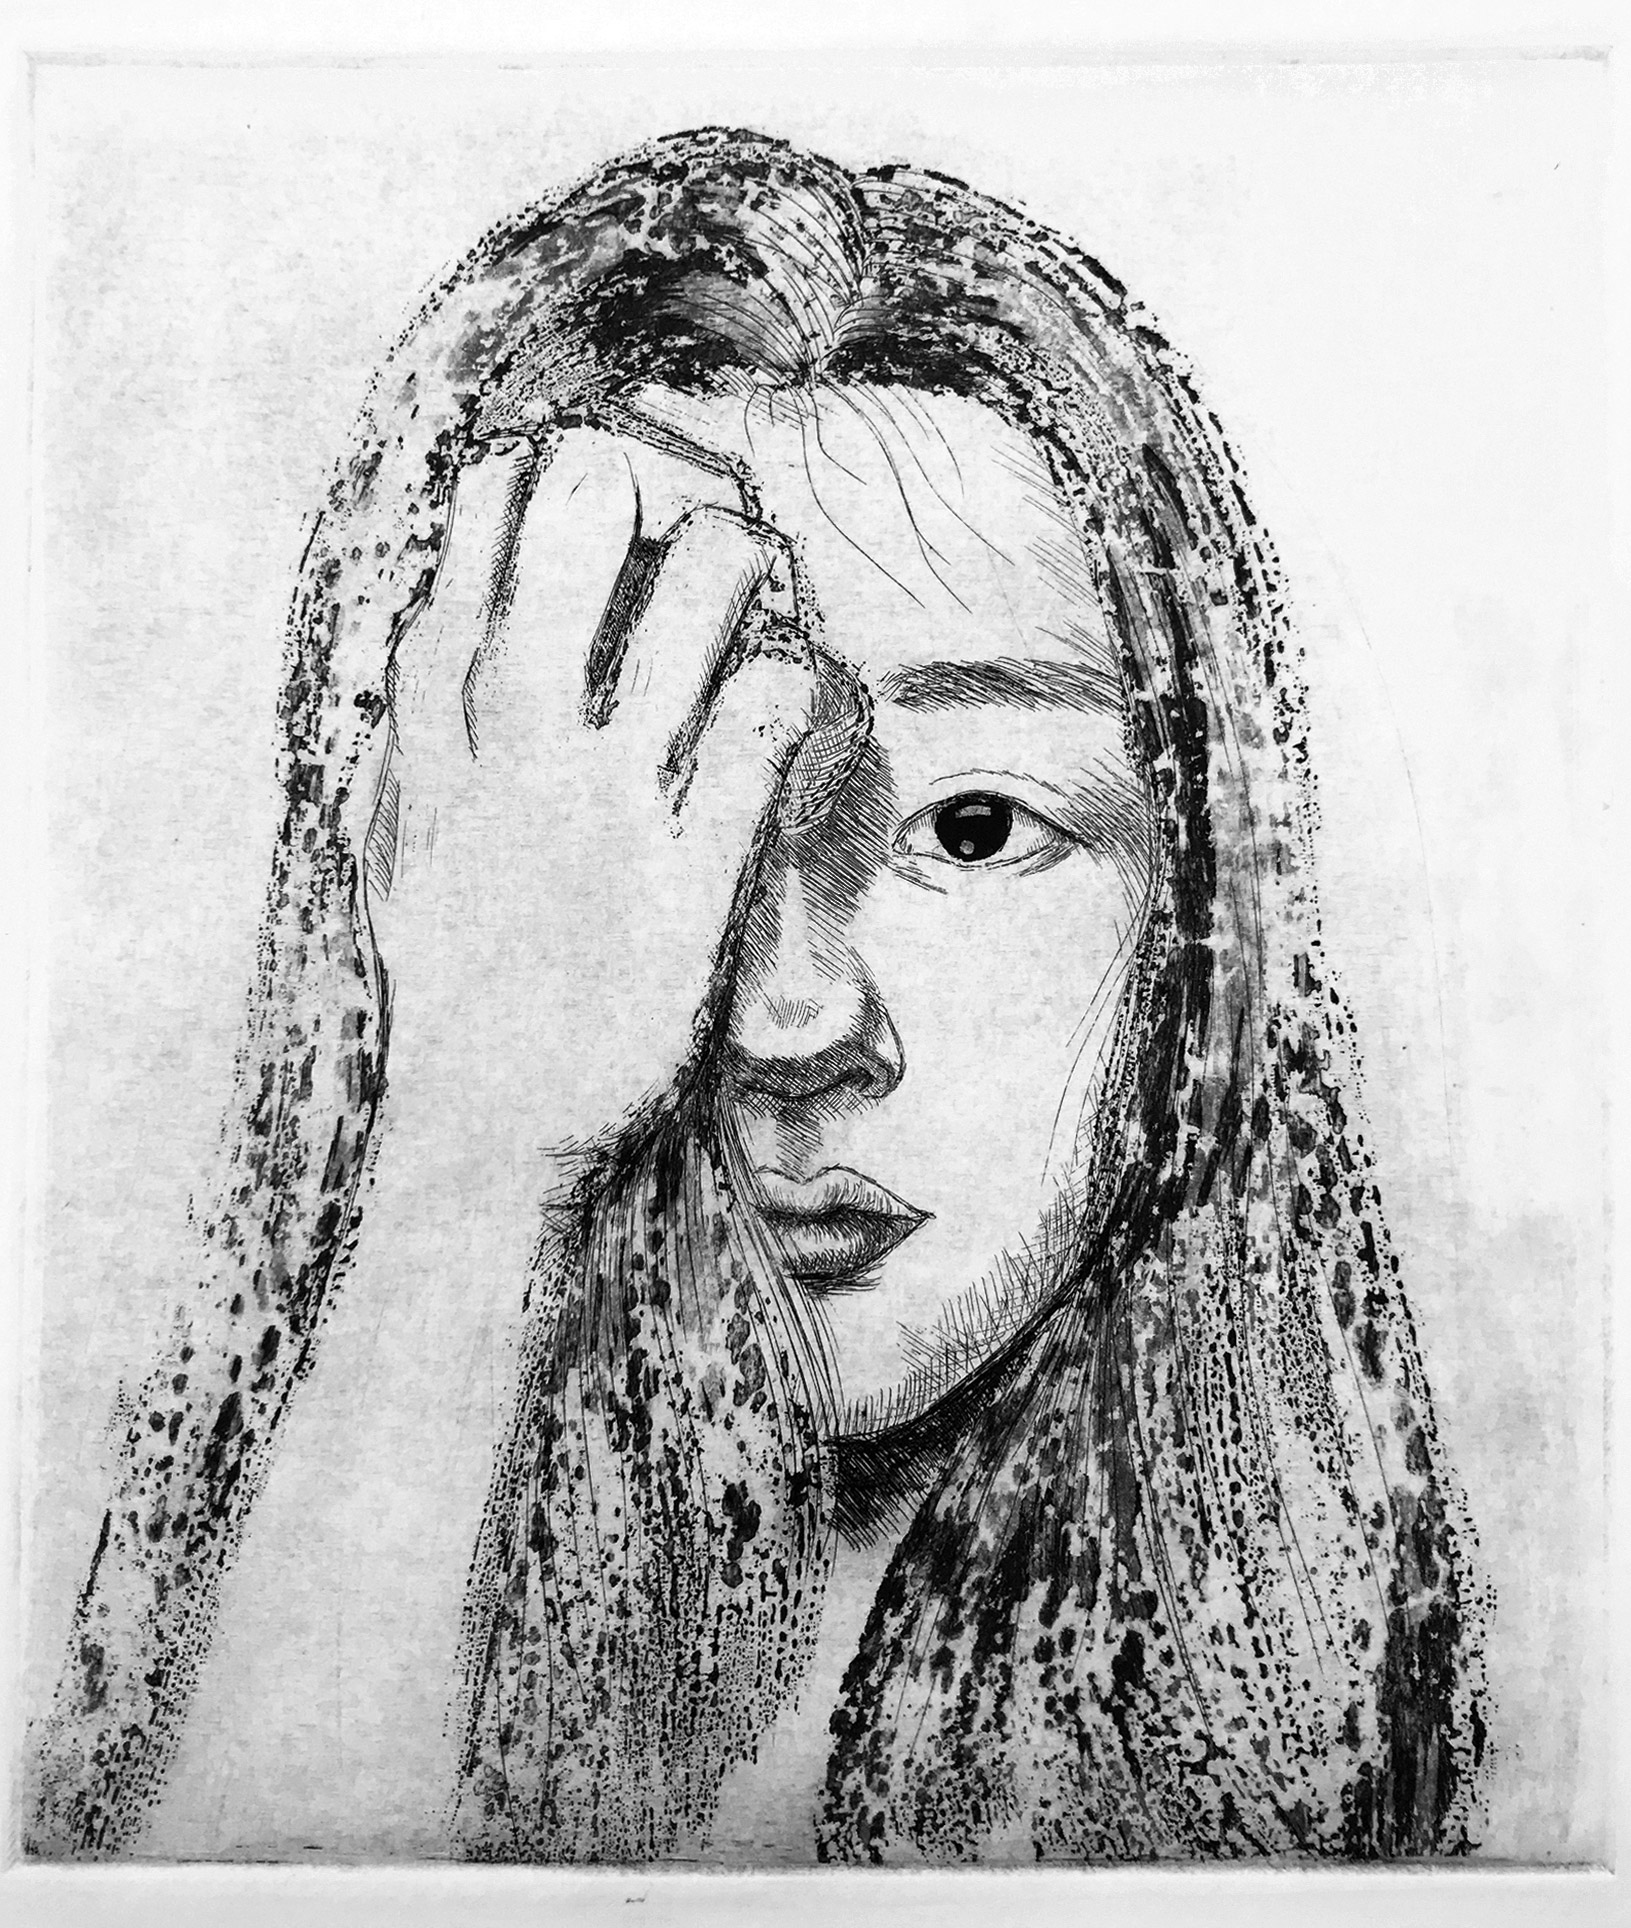 Liqi Sheng, etching self portrait